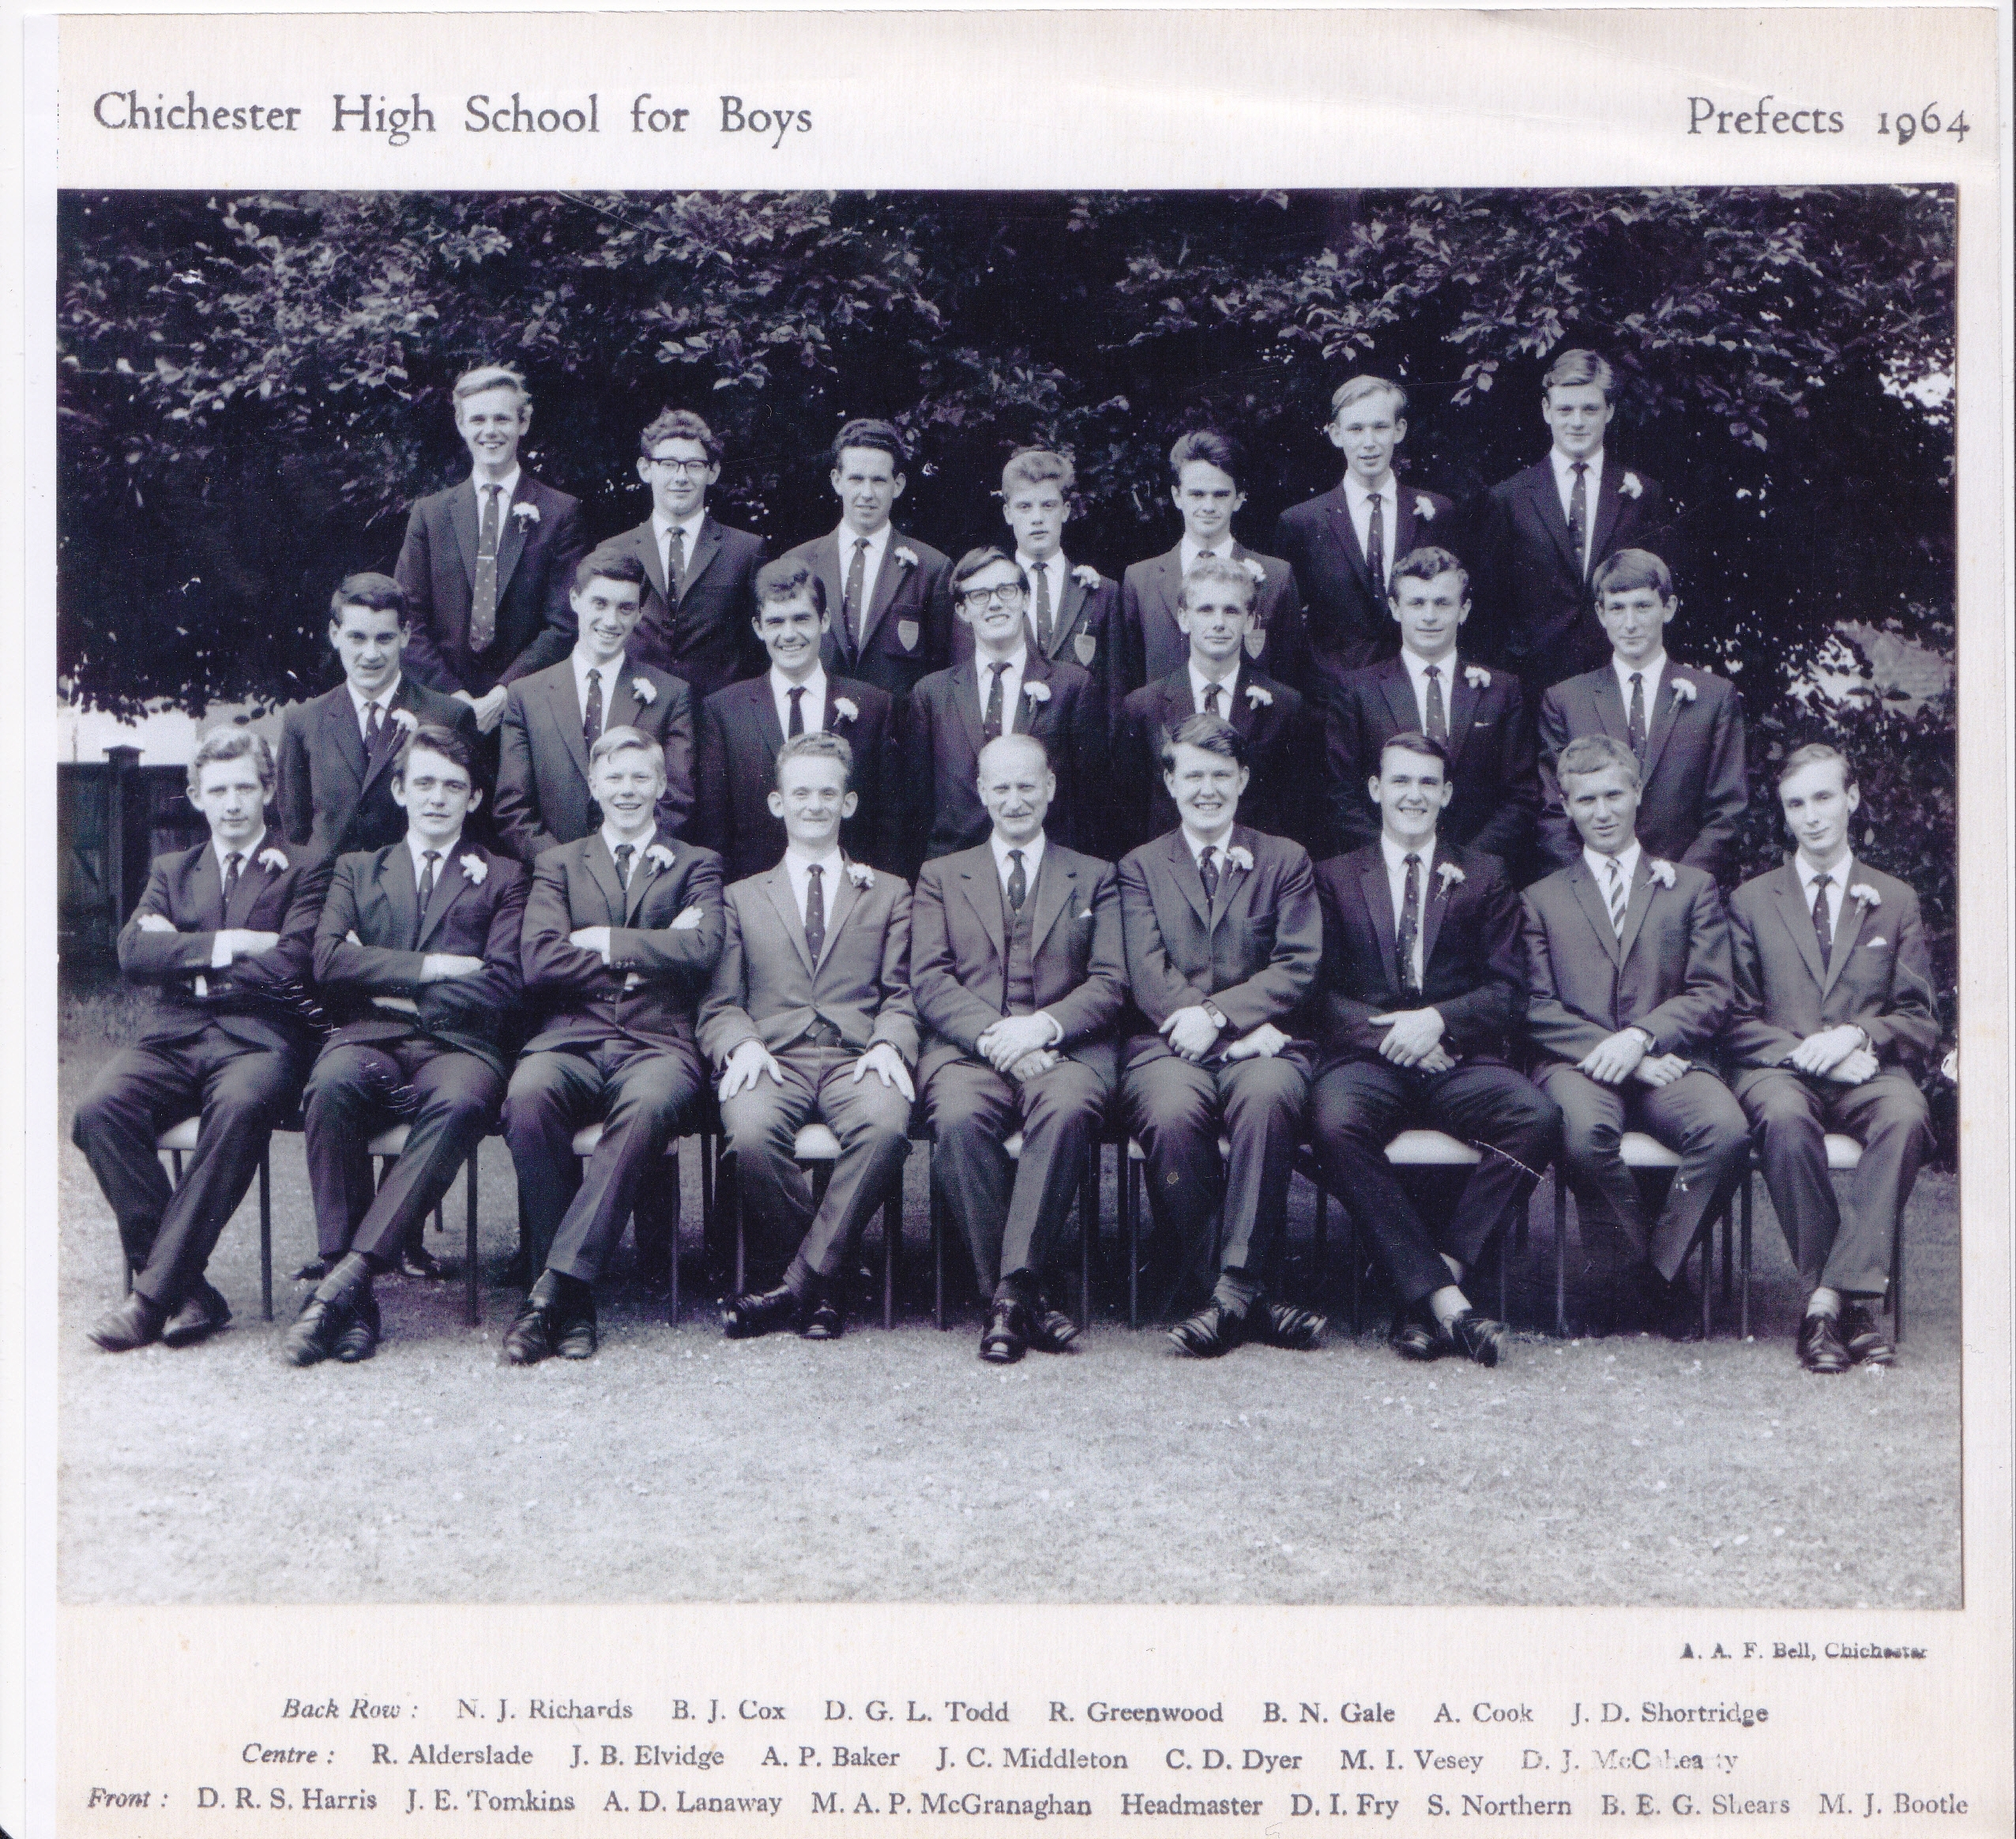 Prefects 1964